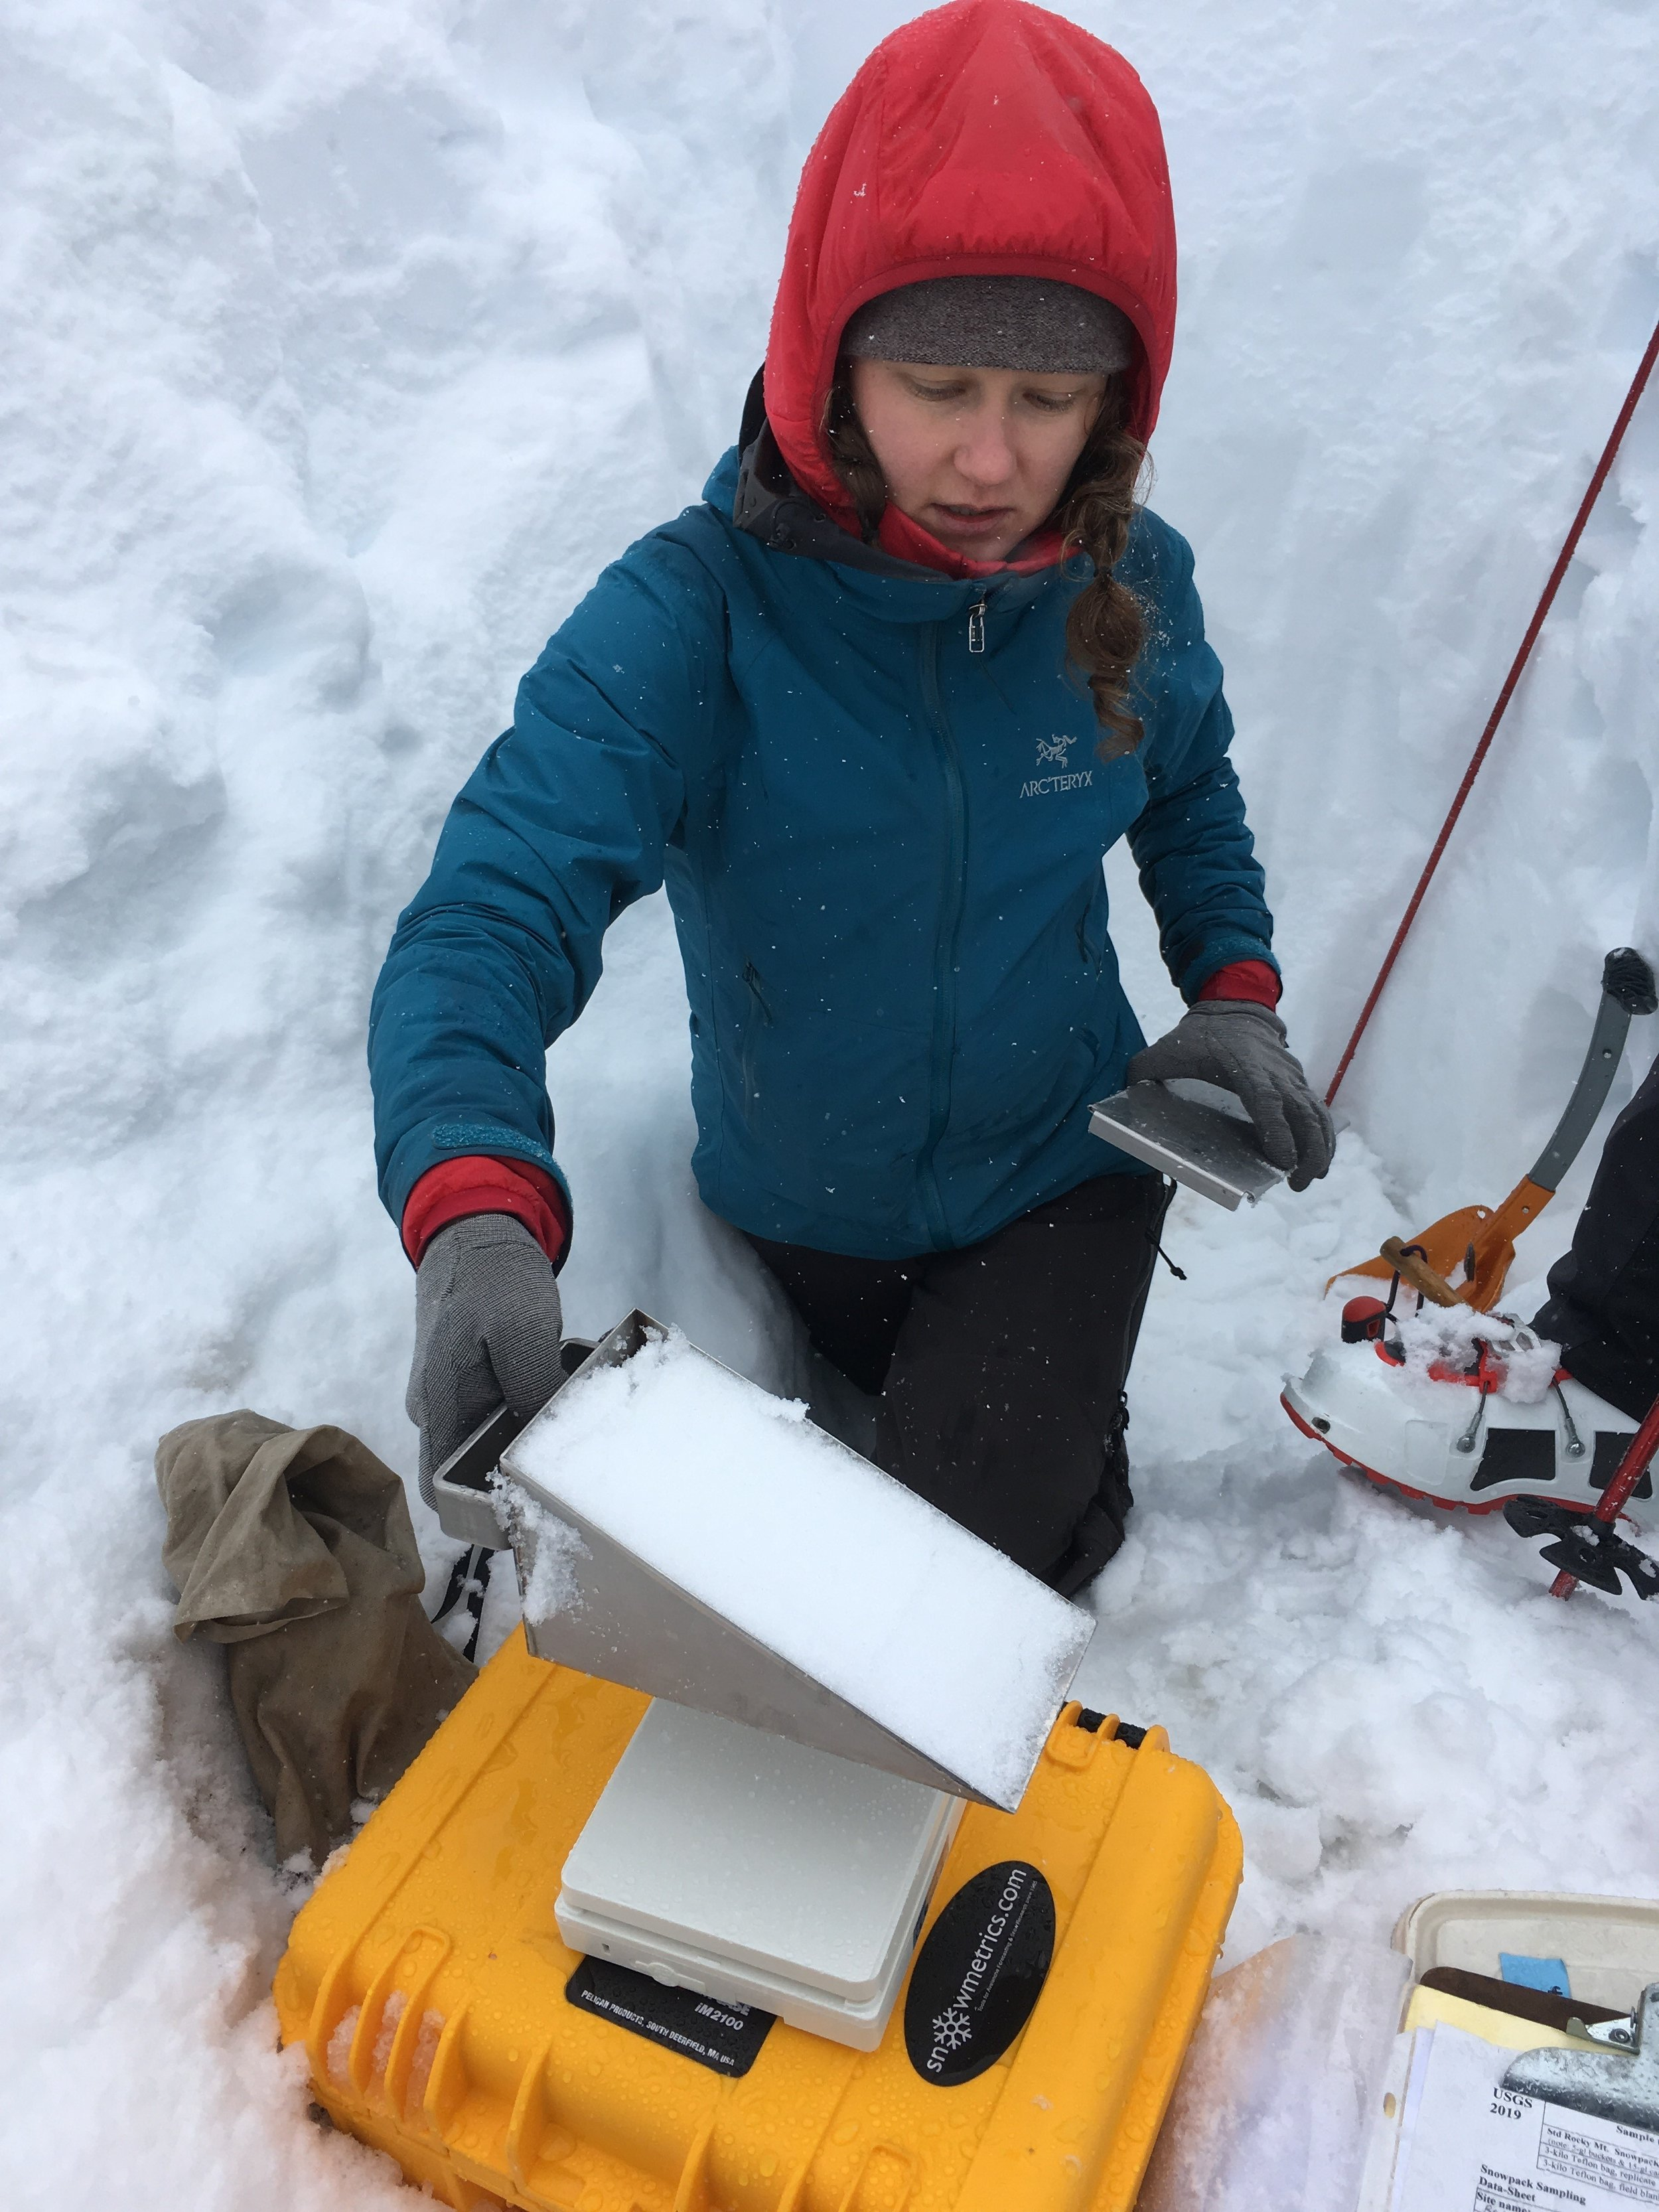 Phoebe measures Snow Water Equivalent (SWE).